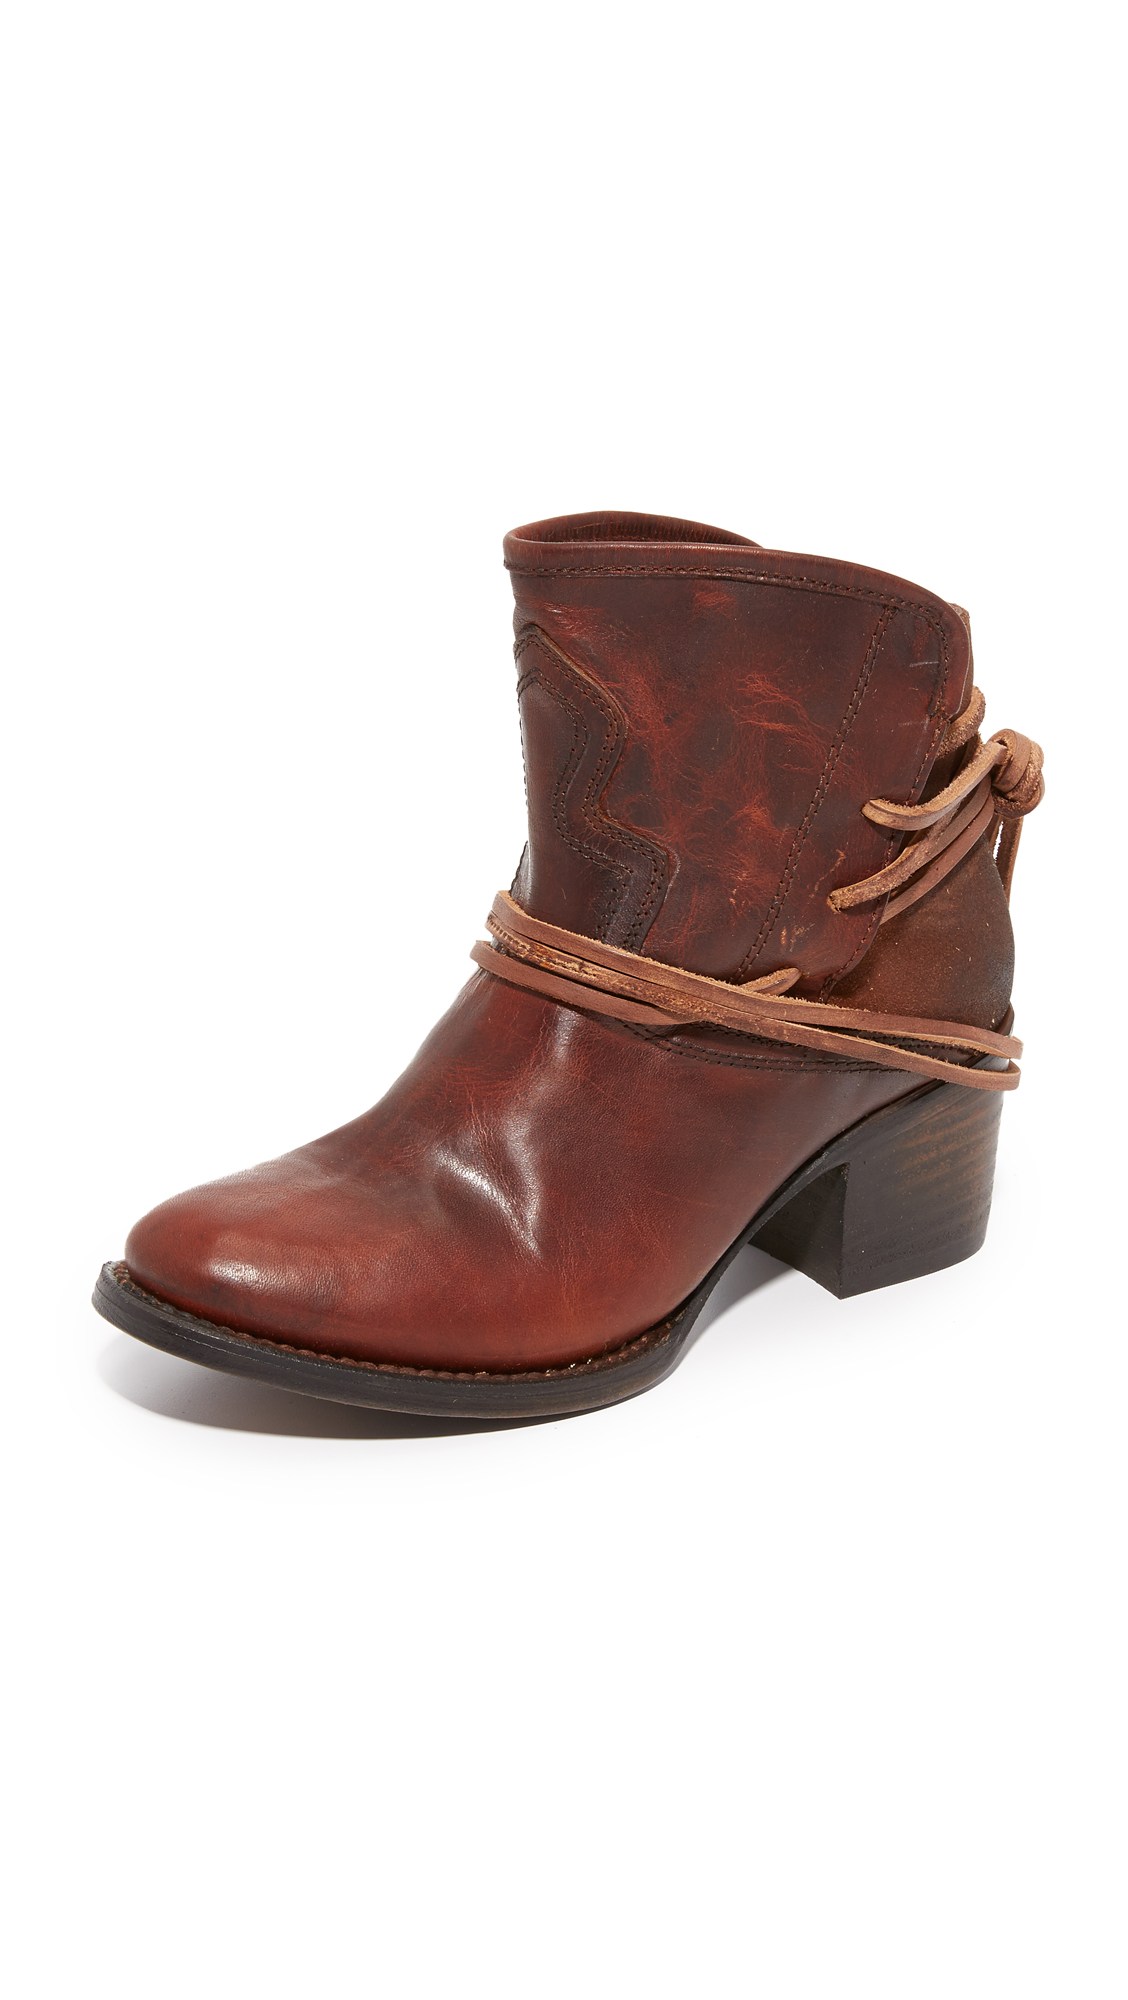 Freebird By Steven Casey Booties - Cognac